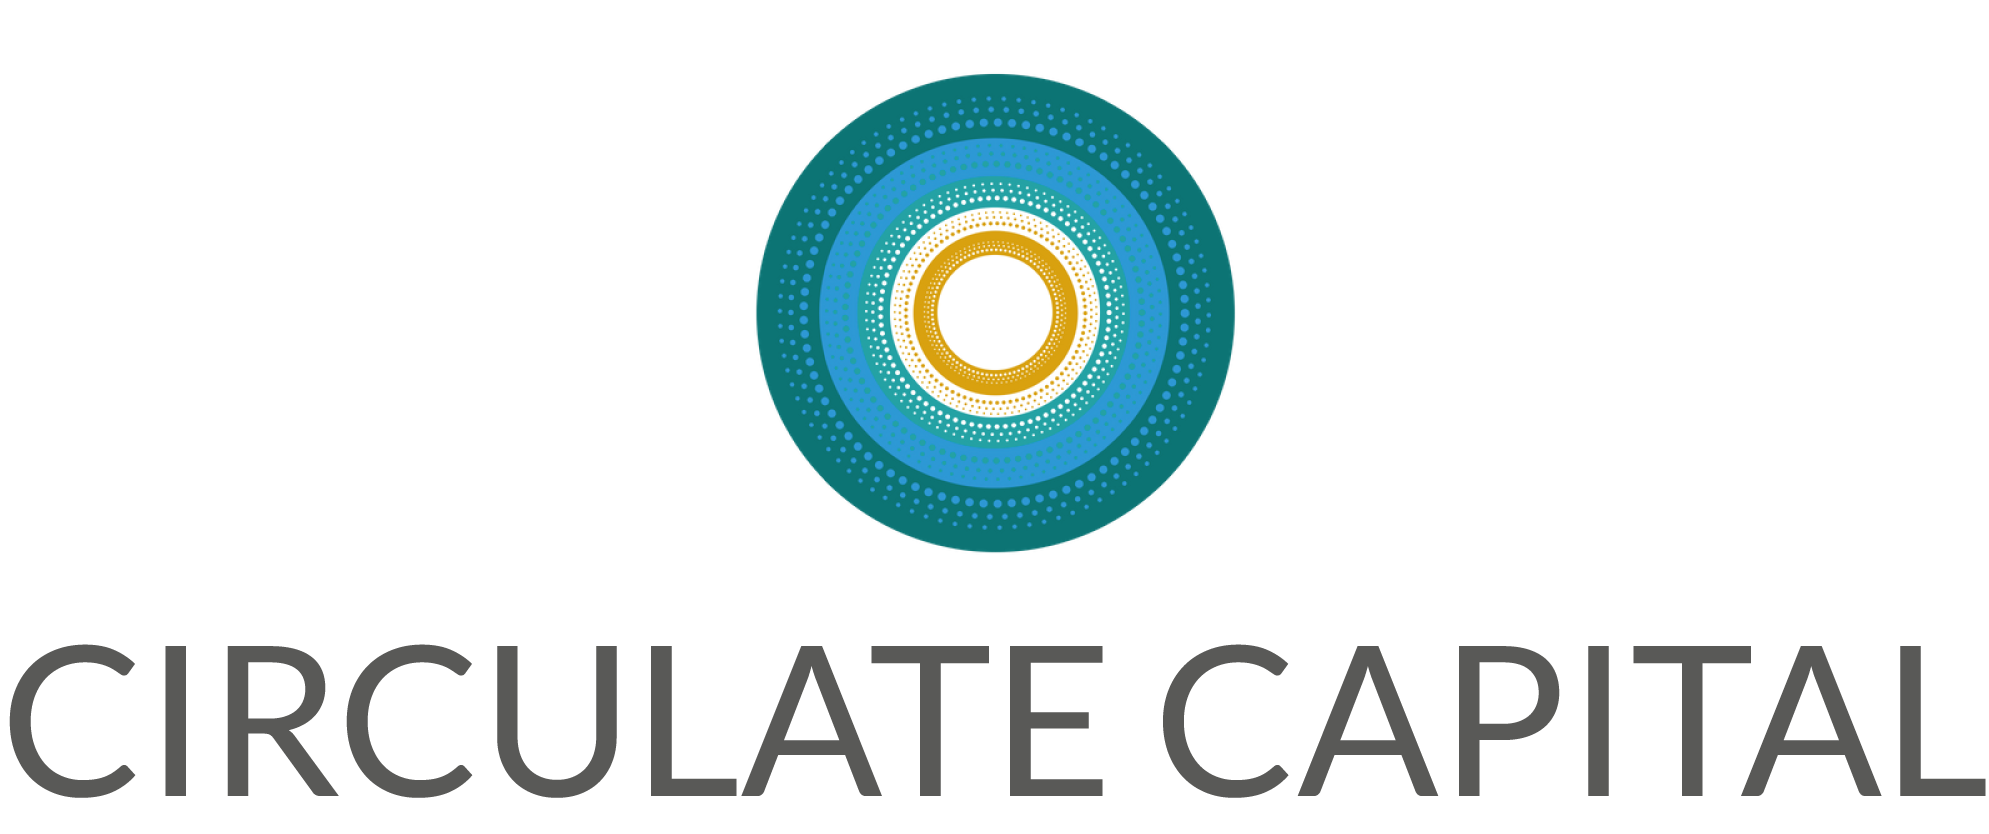 Circulate Capital logo